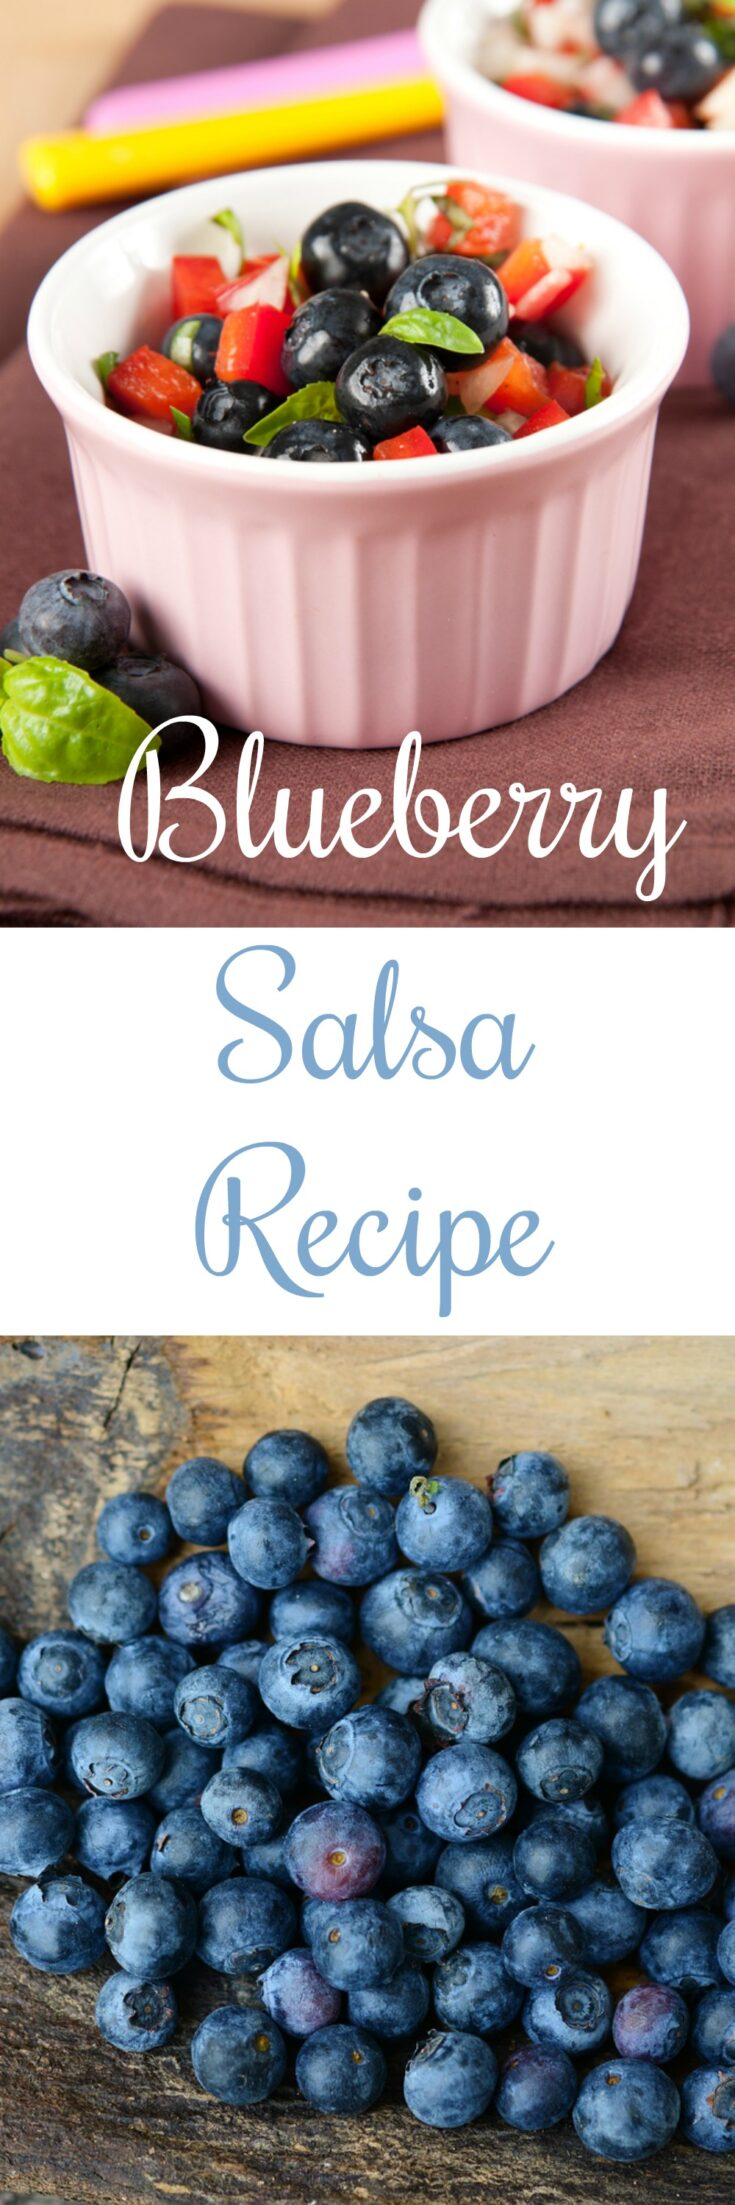 Blueberry Salsa Recipe for Healthier Snacking